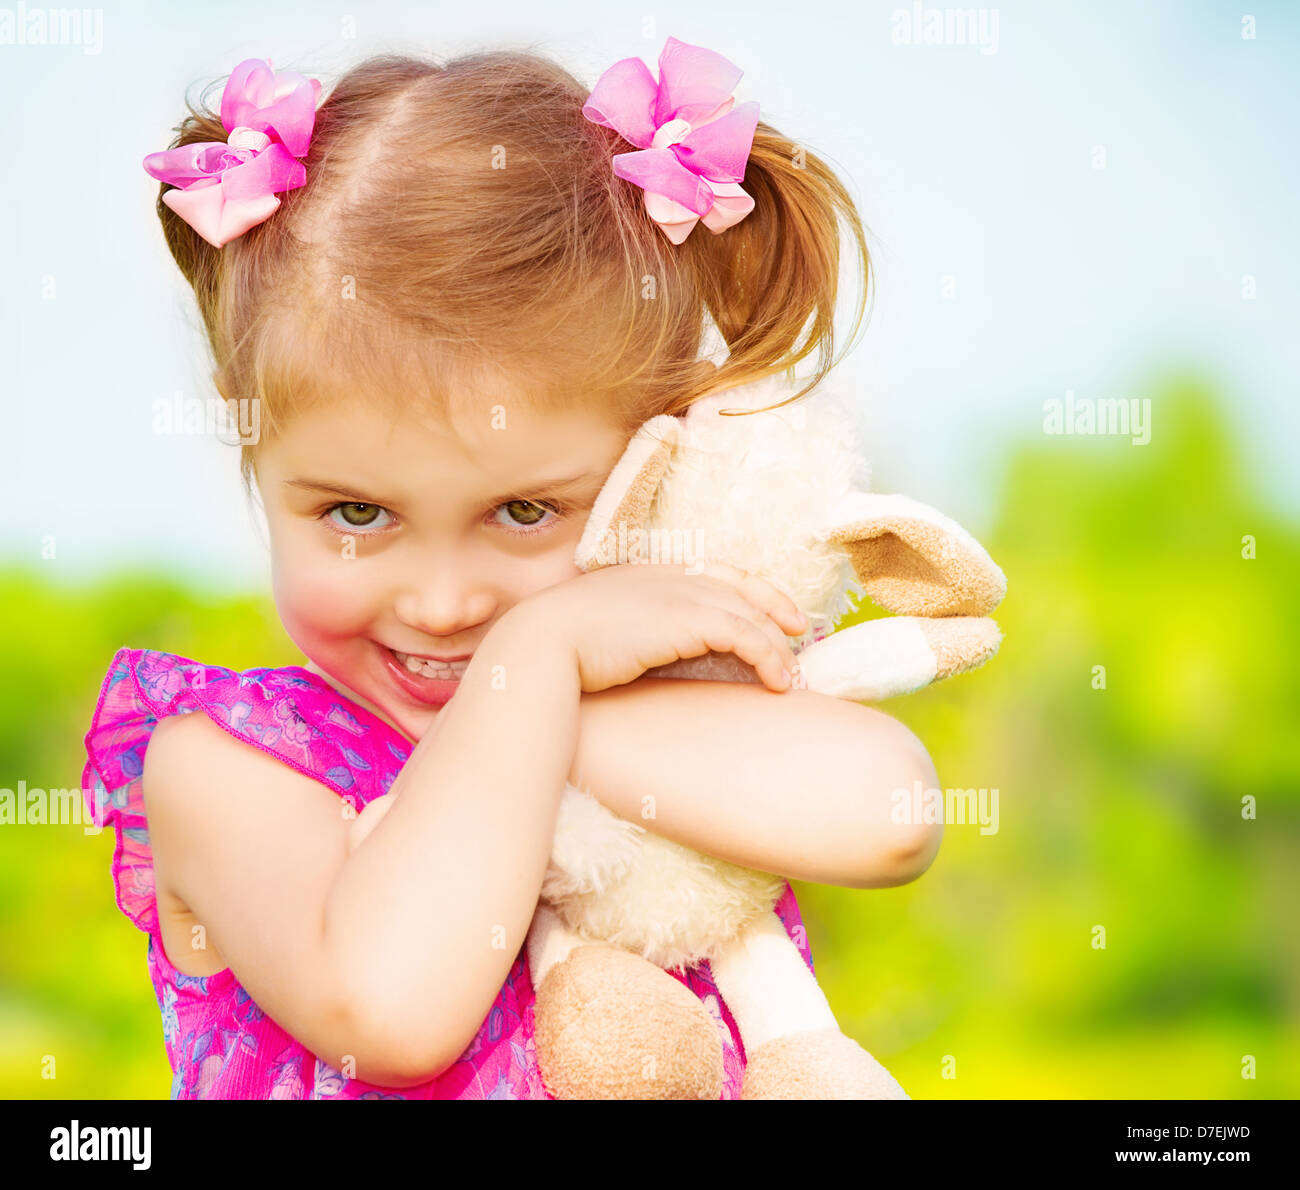 Happy smiling girl with lovely soft toy in the garden in daycare, having fun outdoors, spring season, happy childhood - Stock Image